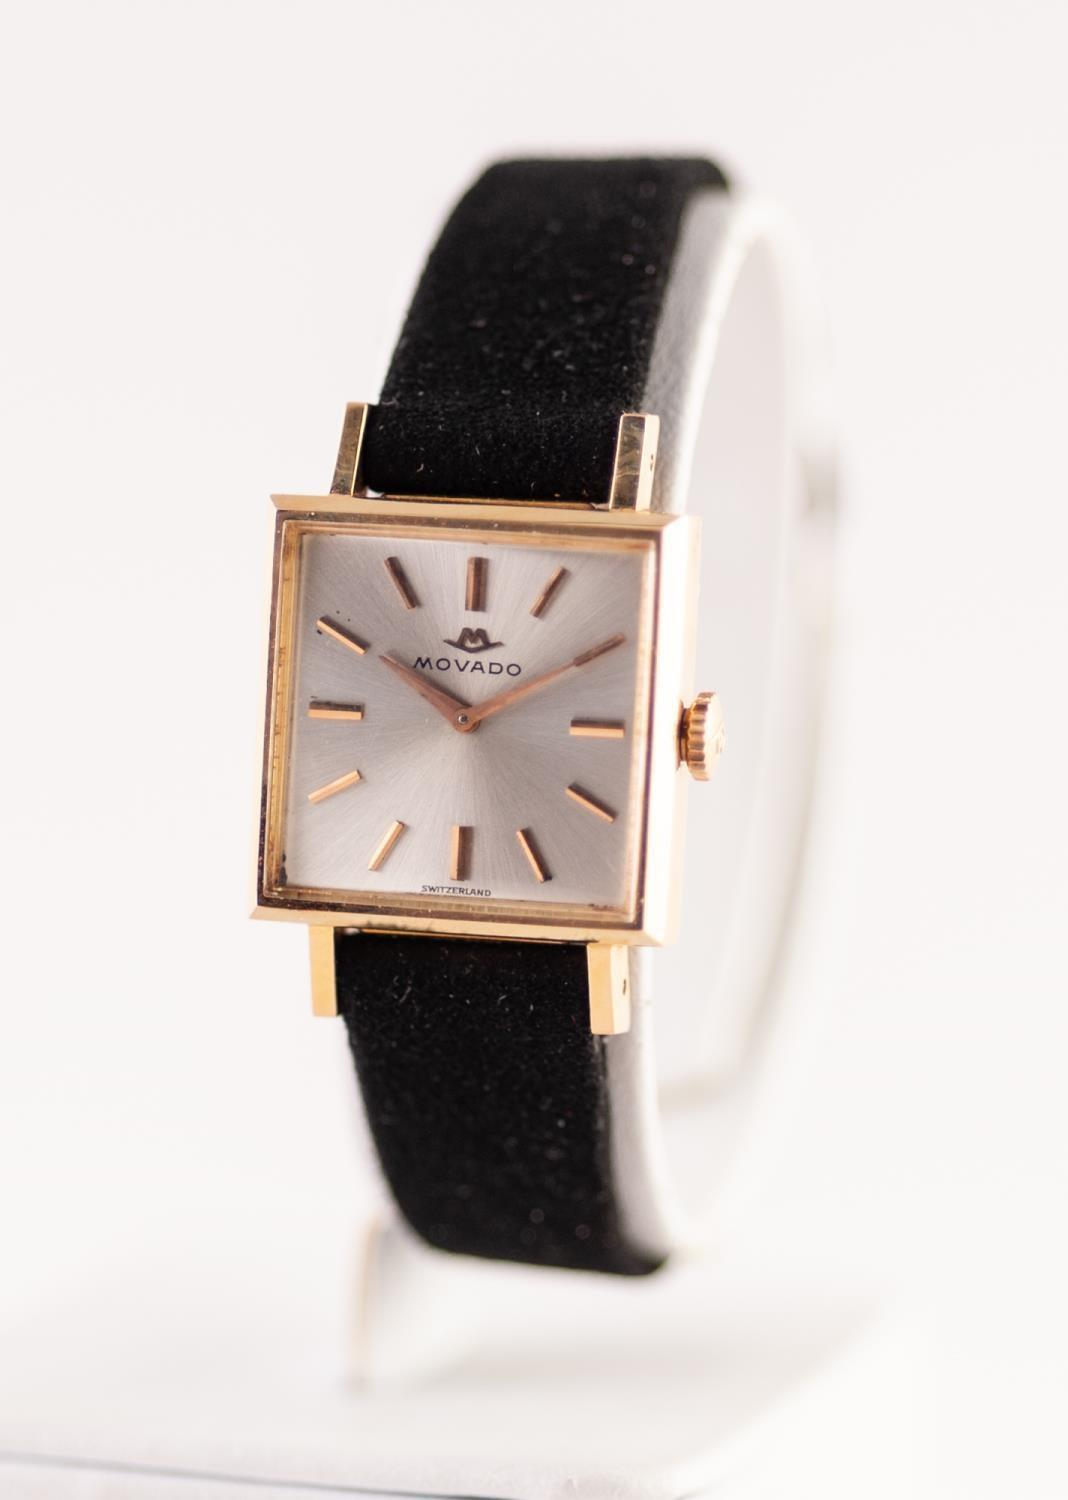 Lot 11 - A LADIES 18CT GOLD CASED MOVADO WRISTWATCH 17 jewel movement signed Movado, square shape signed